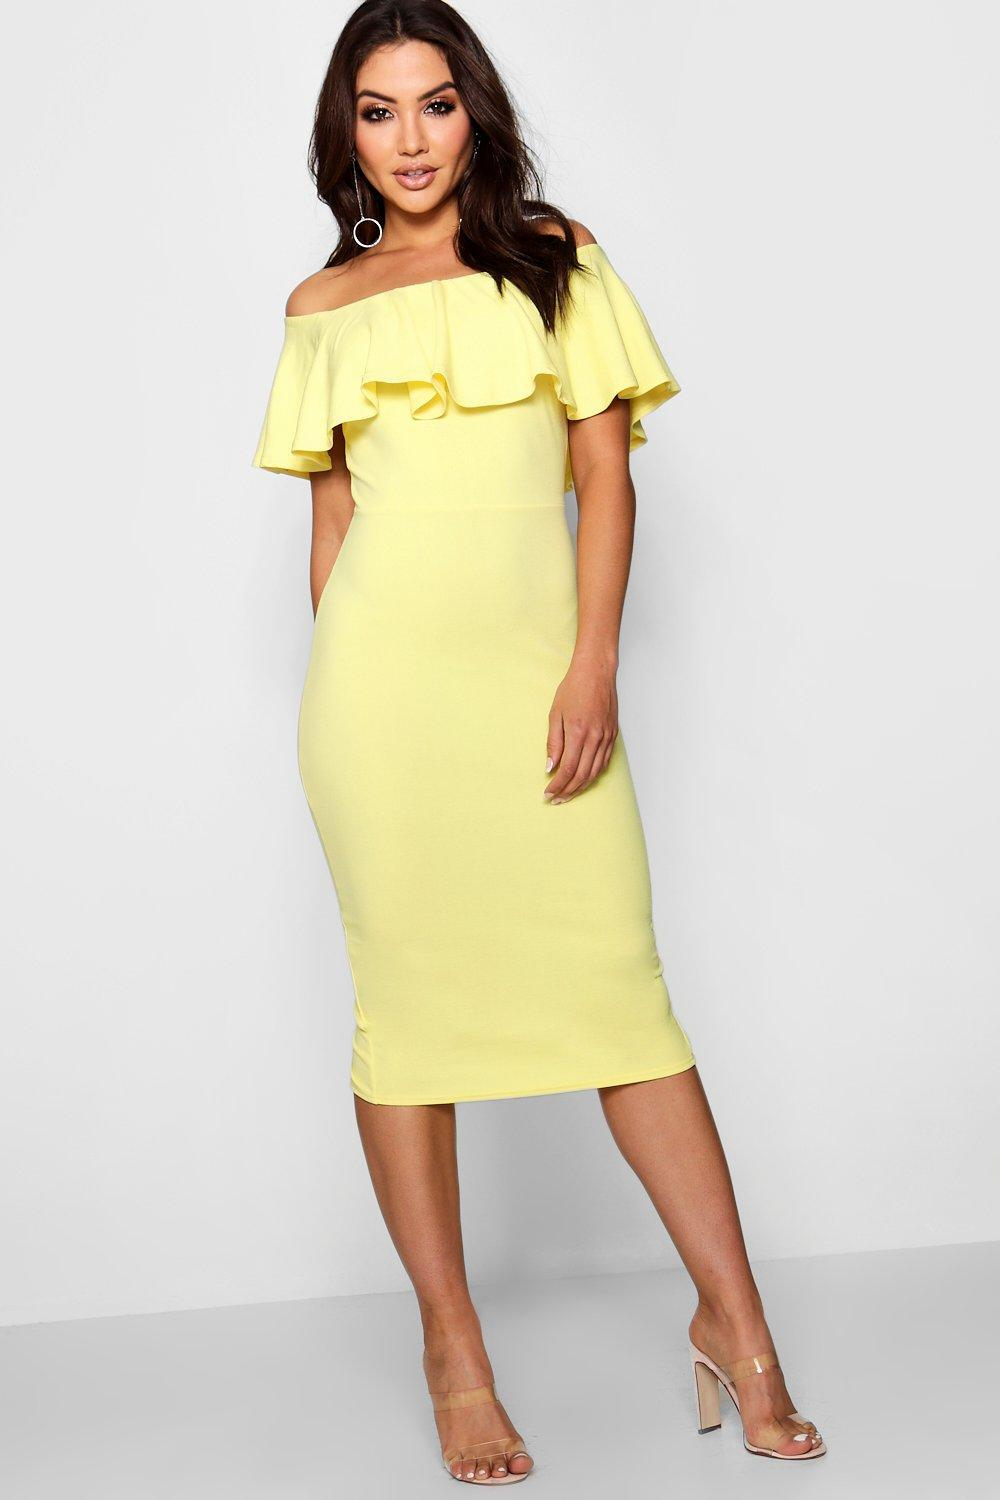 64e6a7c827089 Gallery. Previously sold at: Boohoo · Women's Midi Dresses Women's Off The Shoulder  Dresses Women's Yellow ...